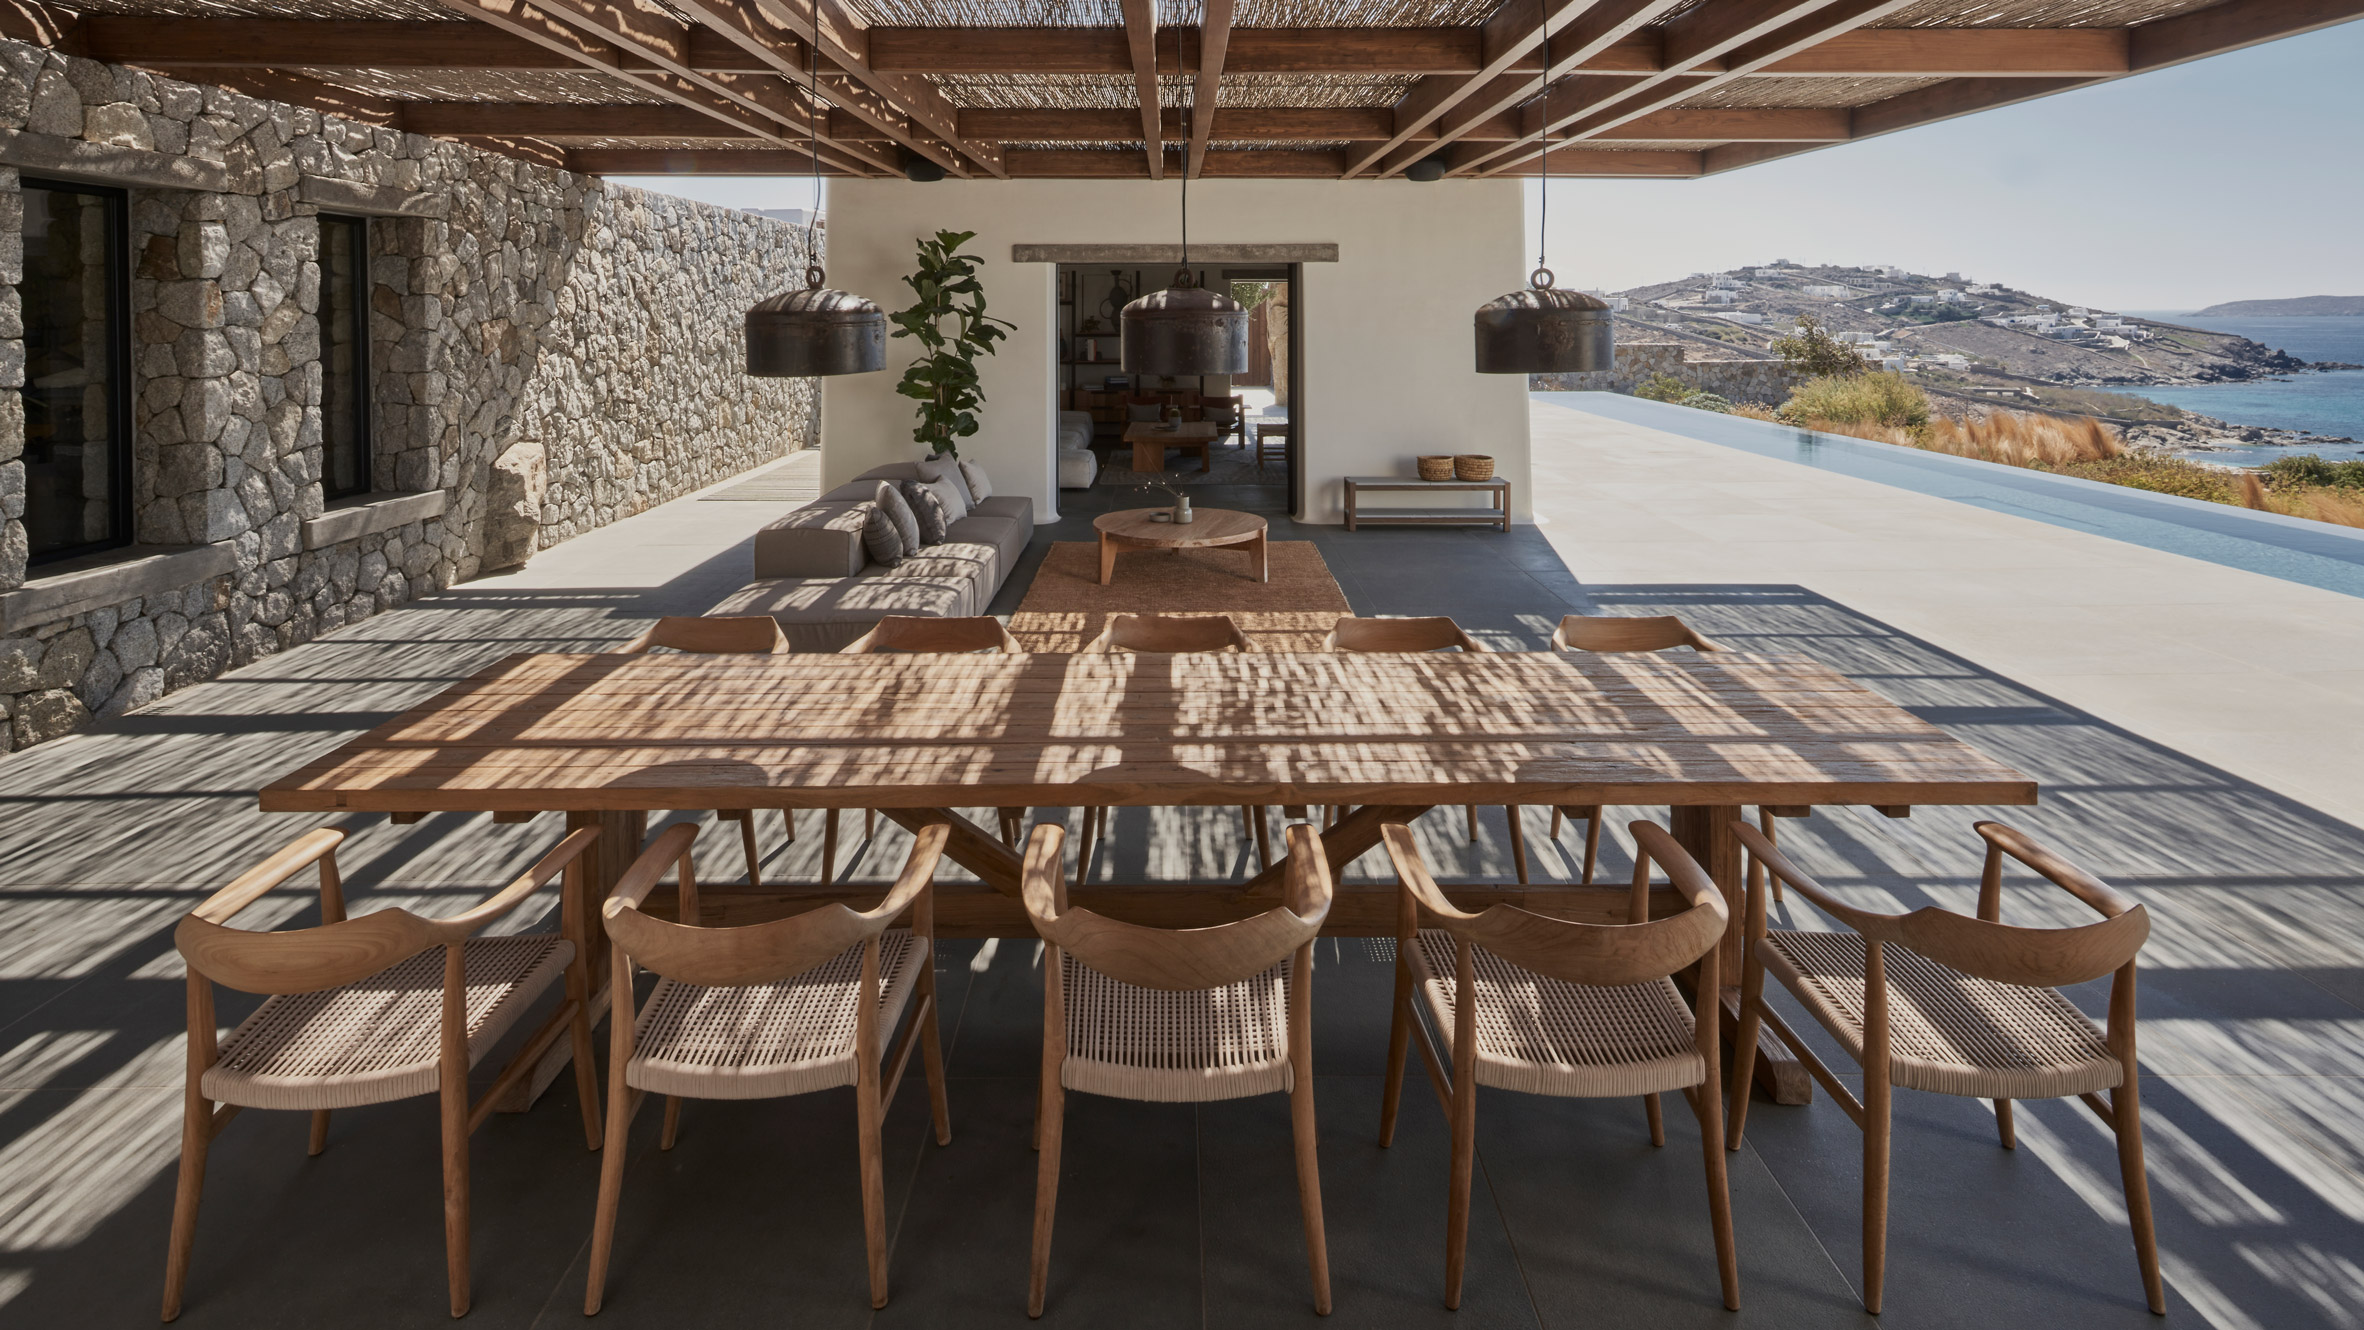 Dining table outdoors in Greek holiday home